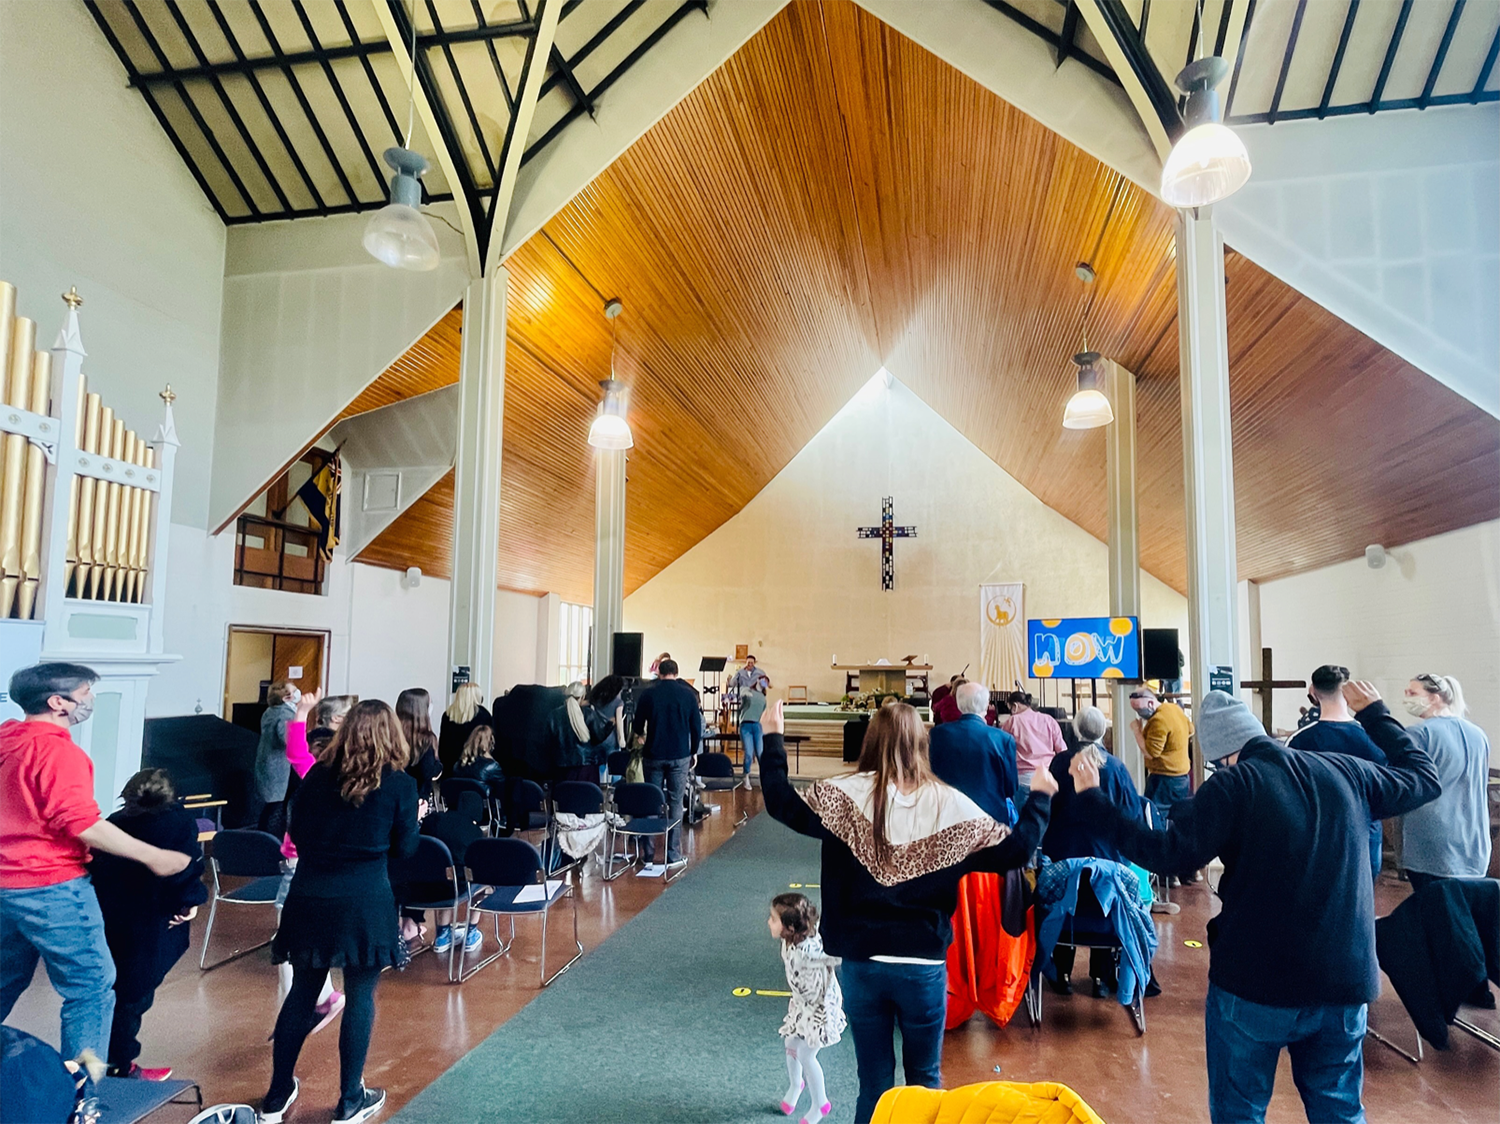 St Francis Mackworth in Derby, United Kingdom has re-opened with social distancing measures in practice to allow in person services. Photo submitted by Ali Davies-Marsh